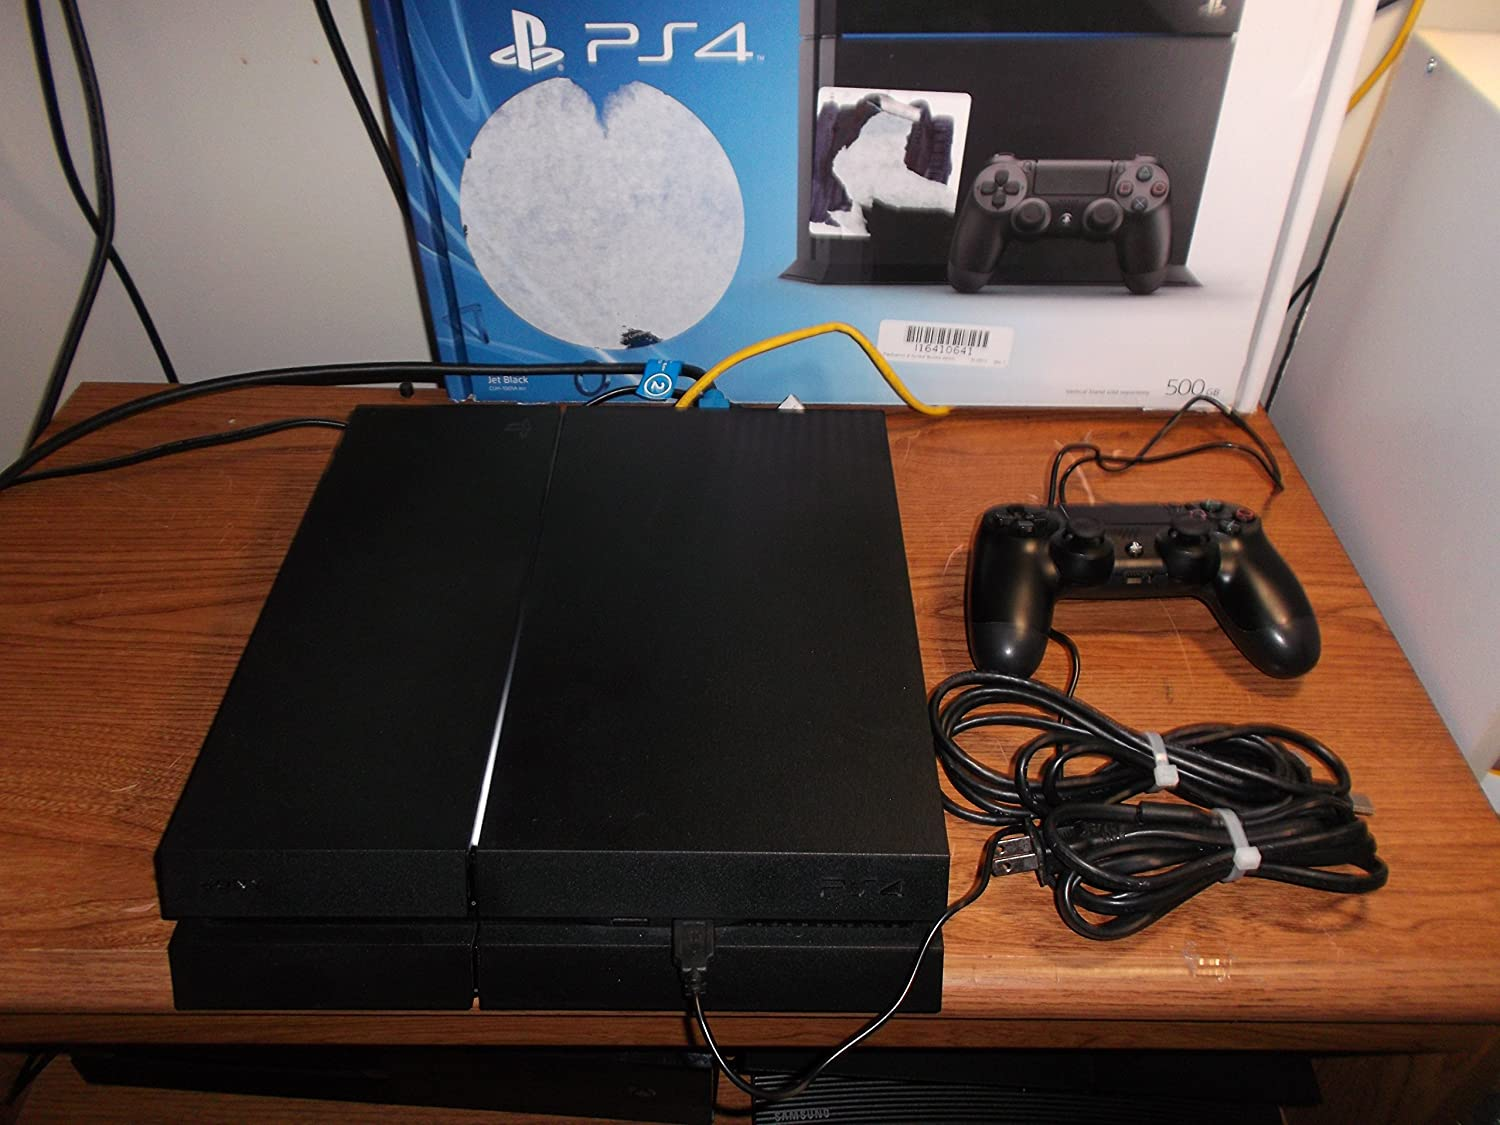 PlayStation 4 Console Fixed Fort Worth Mall price for sale GB 500